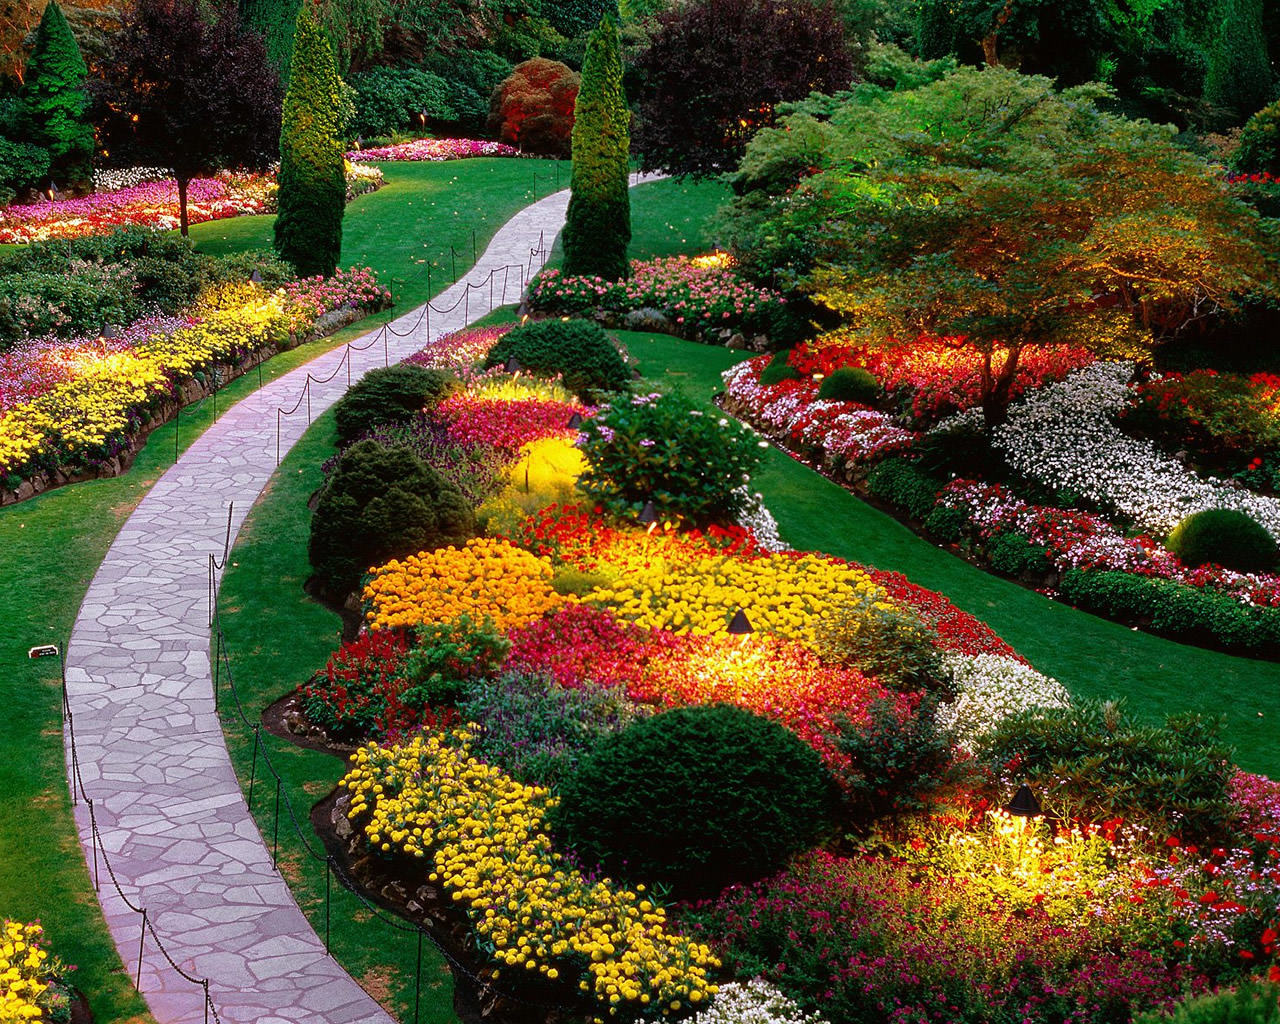 wonderful landscaping ideas for front of house and backyard with cool walkways and colorful flower plants and trees